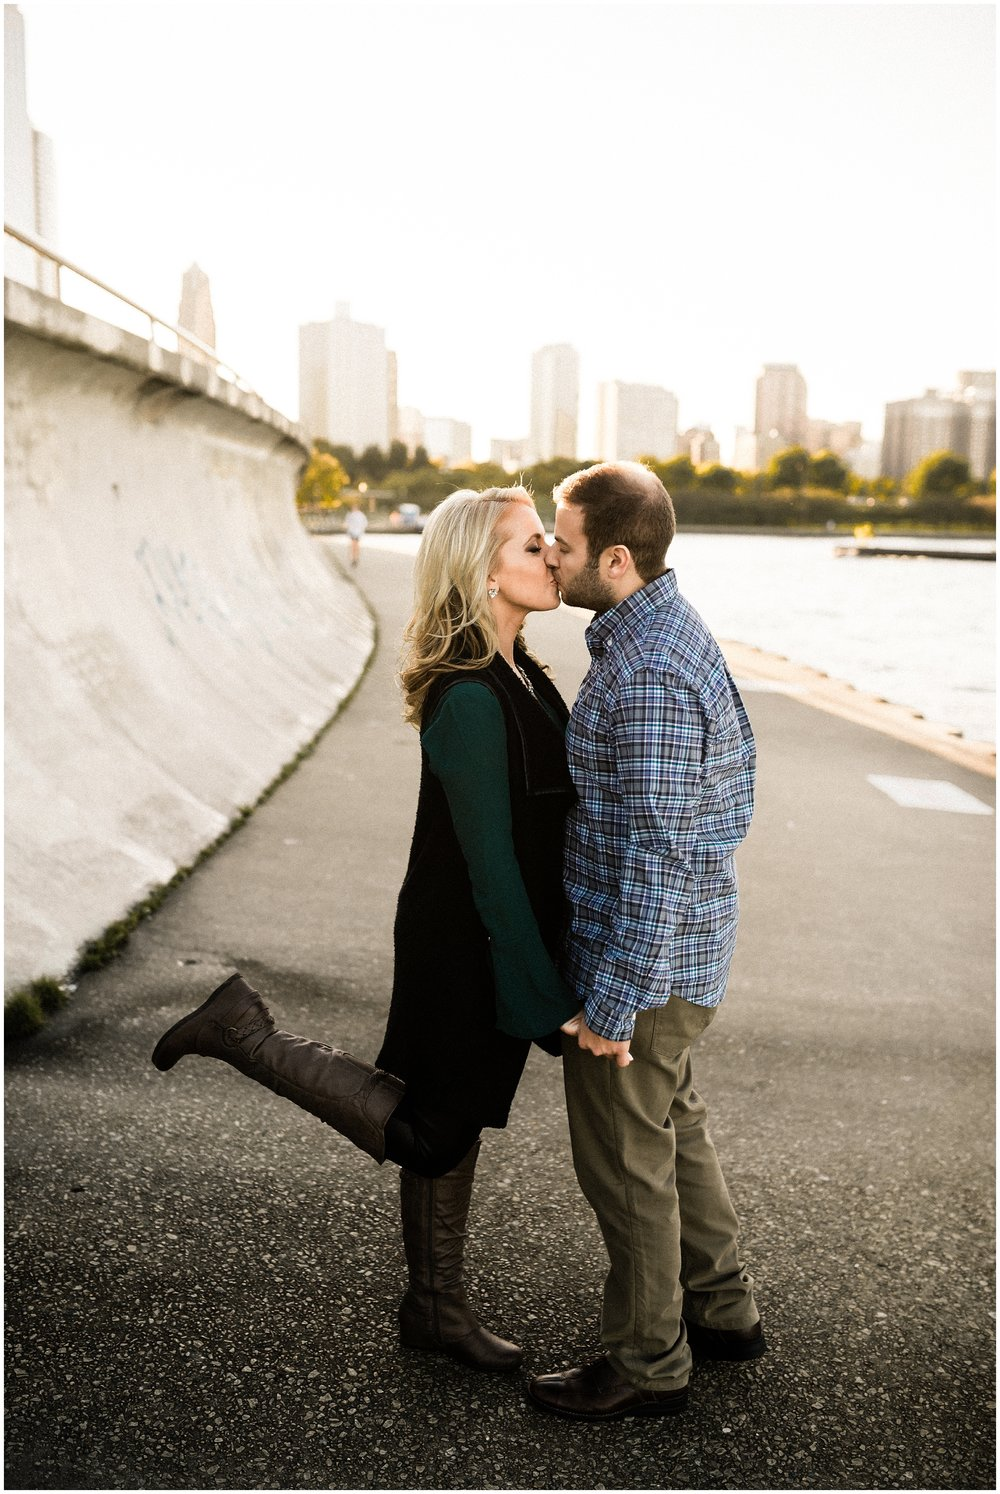 Chris + Kim | Engaged #kyleepaigephotography_1659.jpg